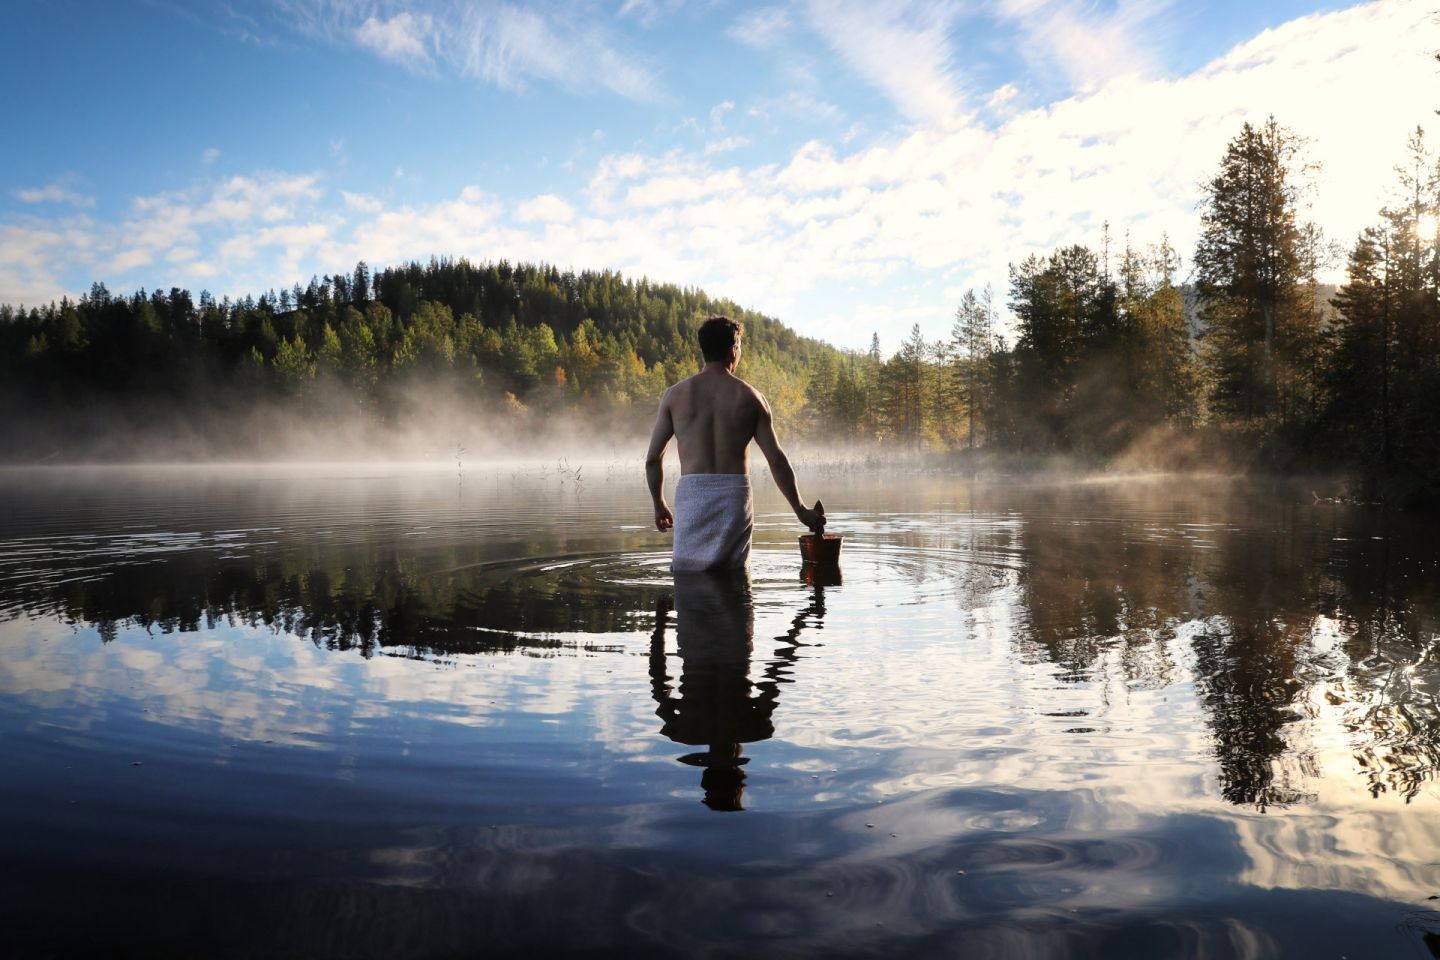 Wellness and wellbeing are part of Finland's culture and one reason we're the happiest country on Earth!